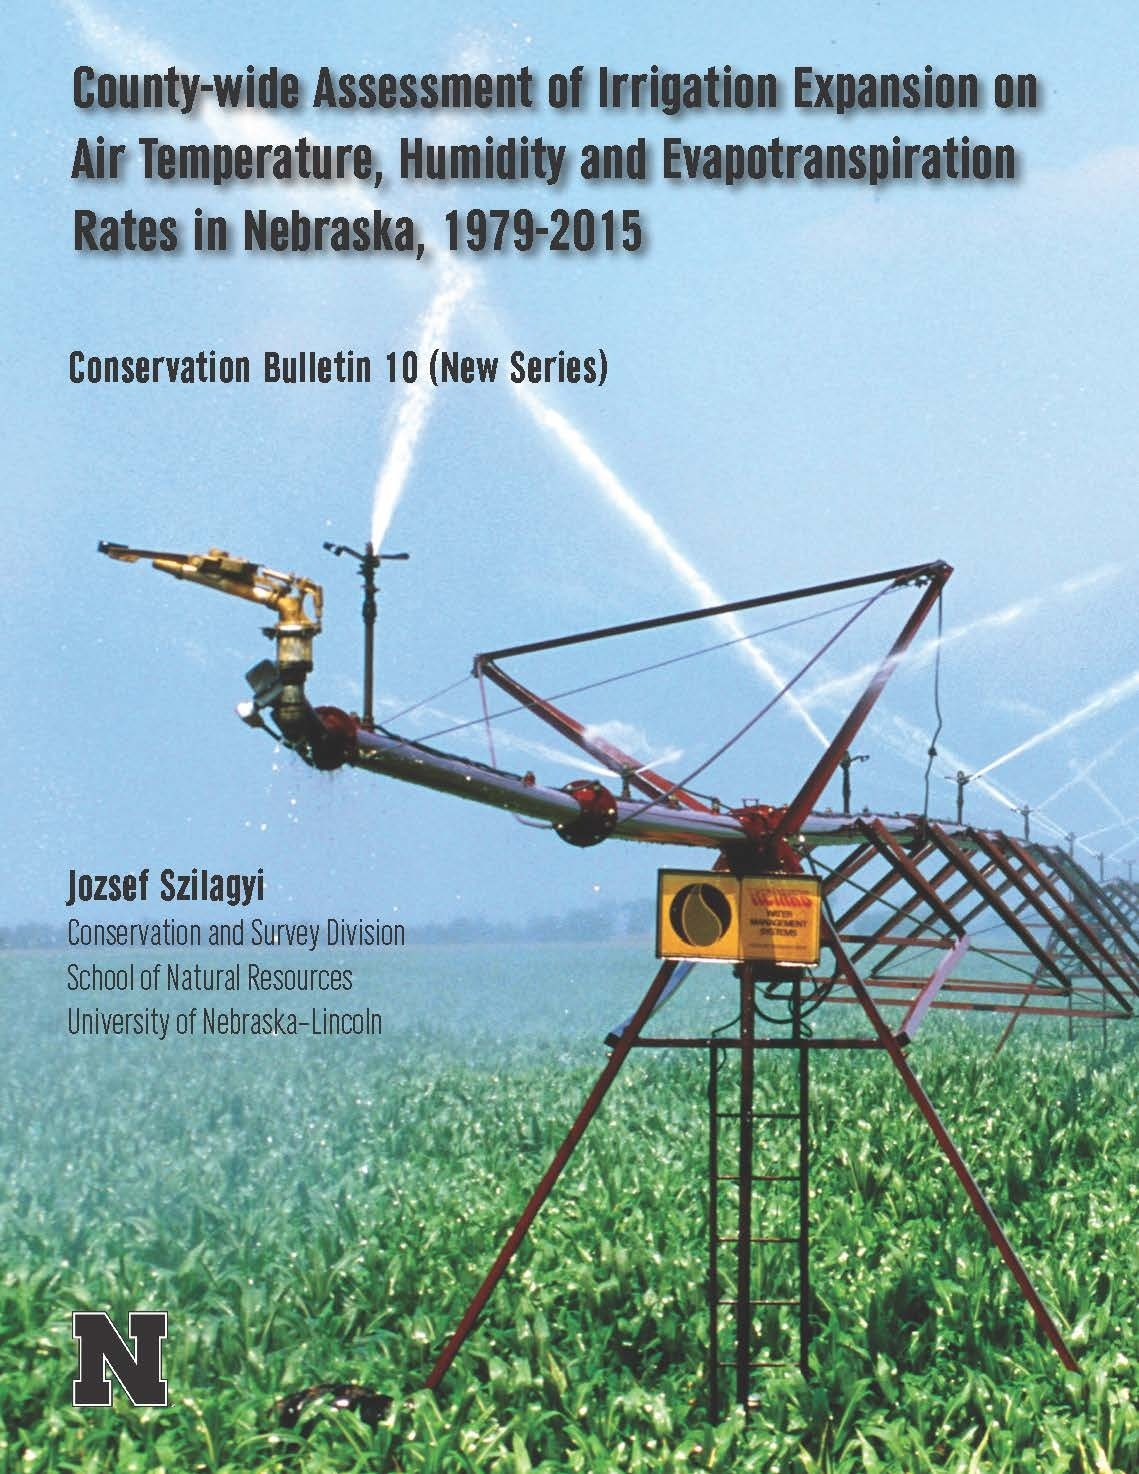 County-wide Assessment of Irrigation Expansion on Air Temperature, Humidity and Evapotranspiration Rates in Nebraska, 1979-2015 (CB-10(NS))